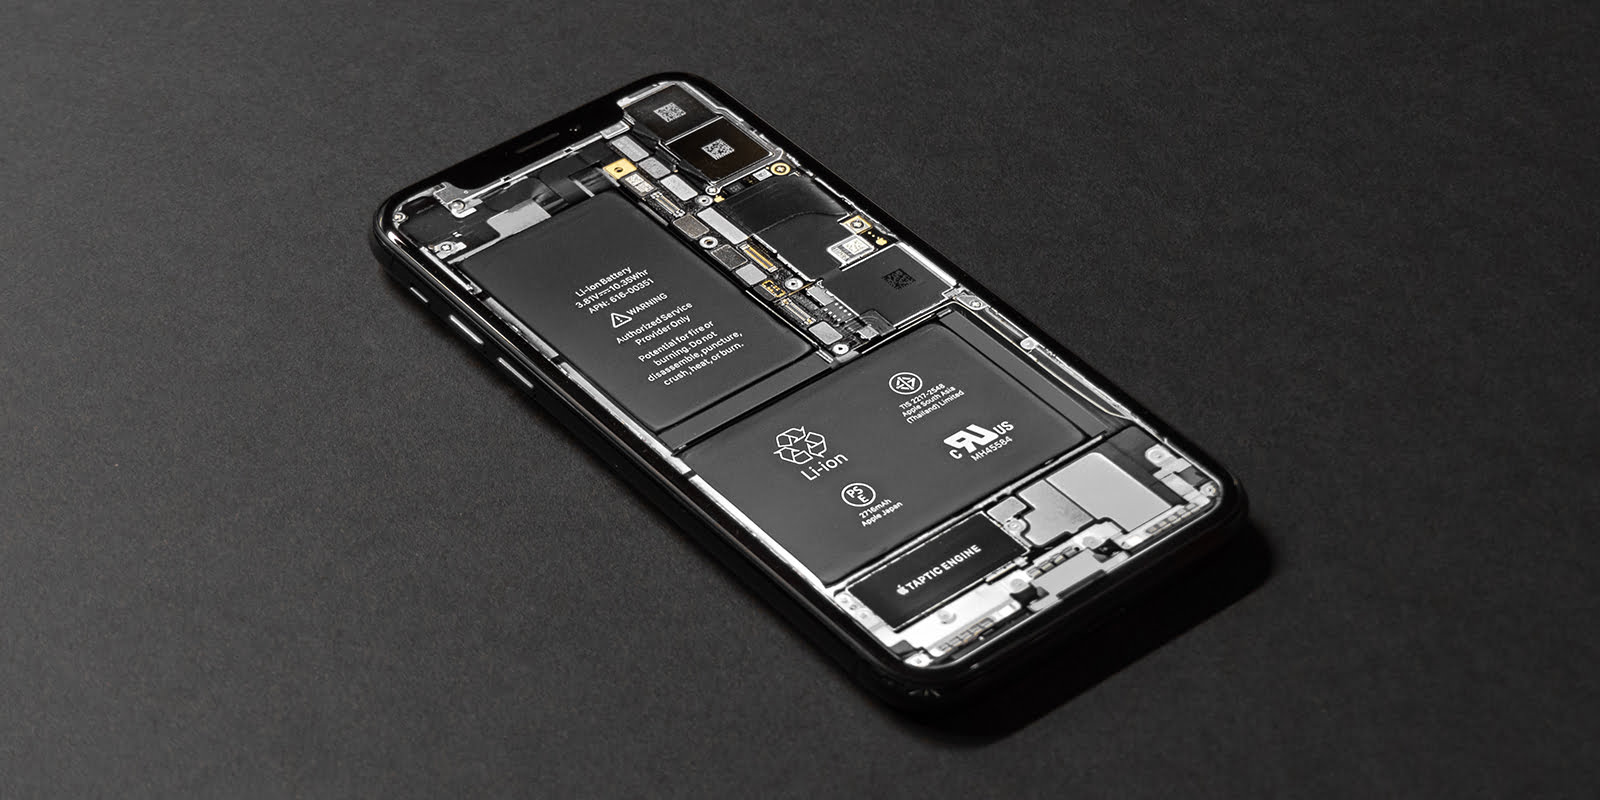 An iPhone's inside look with a removable battery